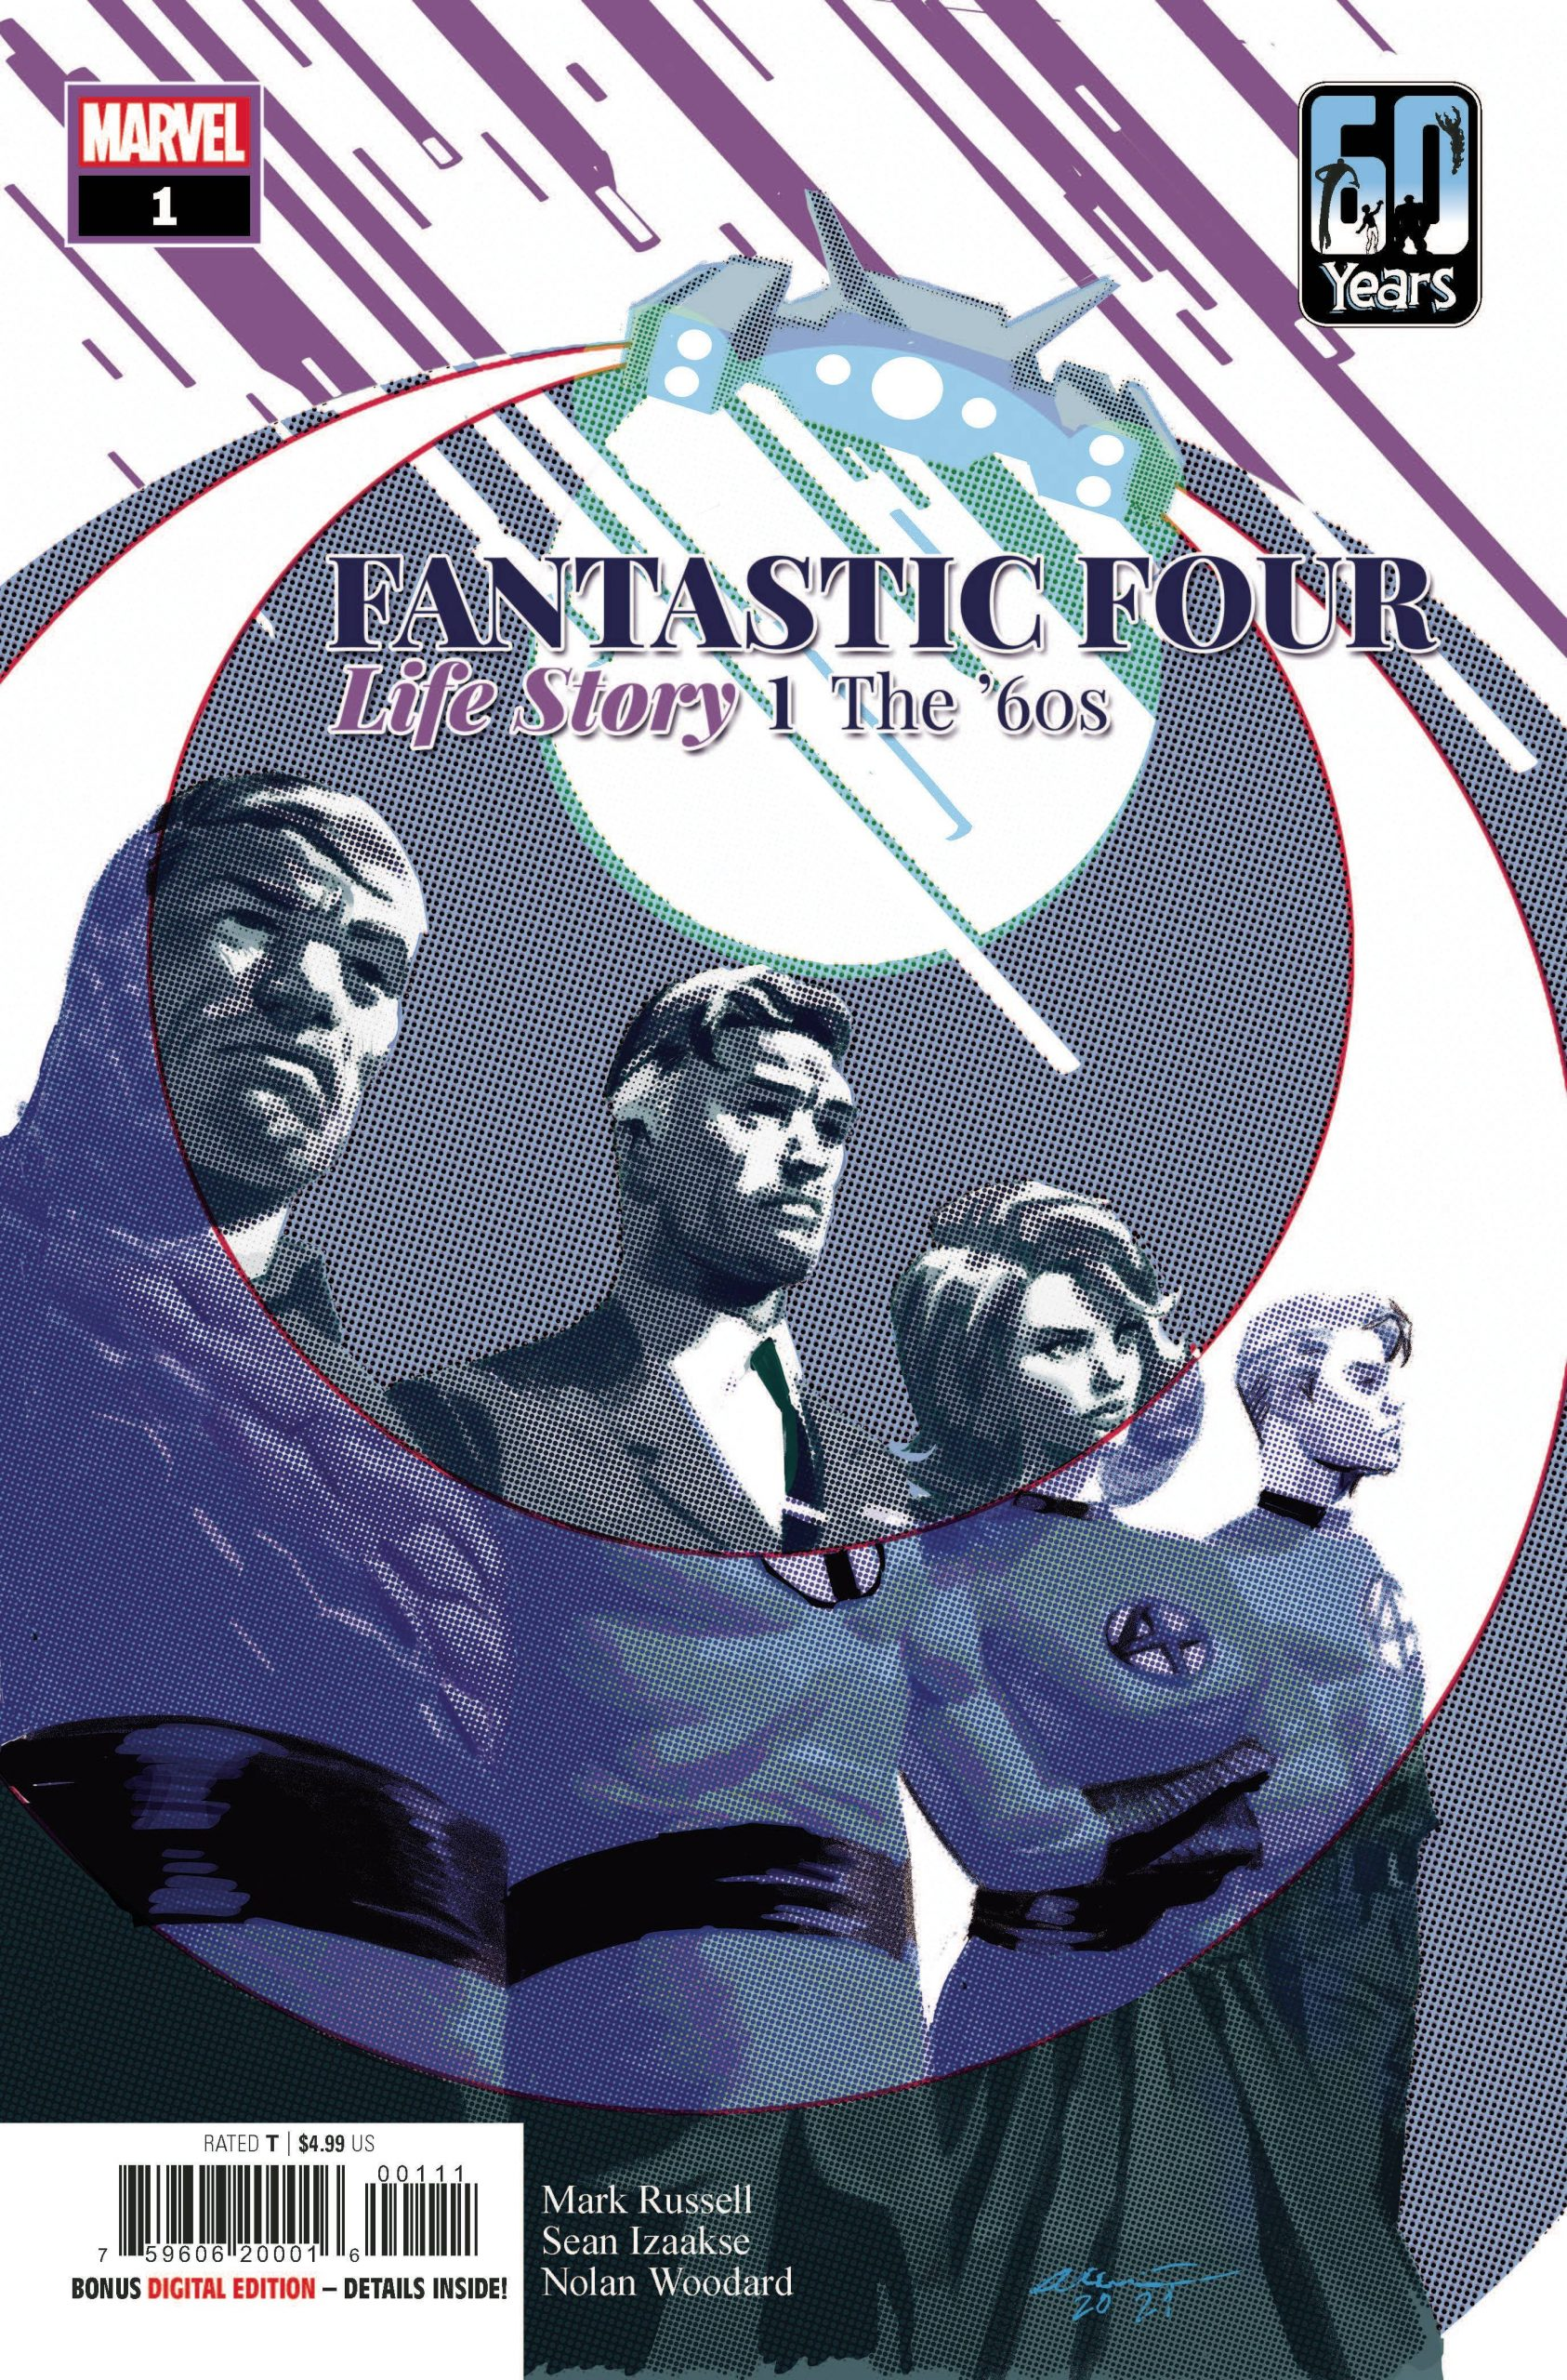 Fantastic Four - Life Story 1 - The 60s